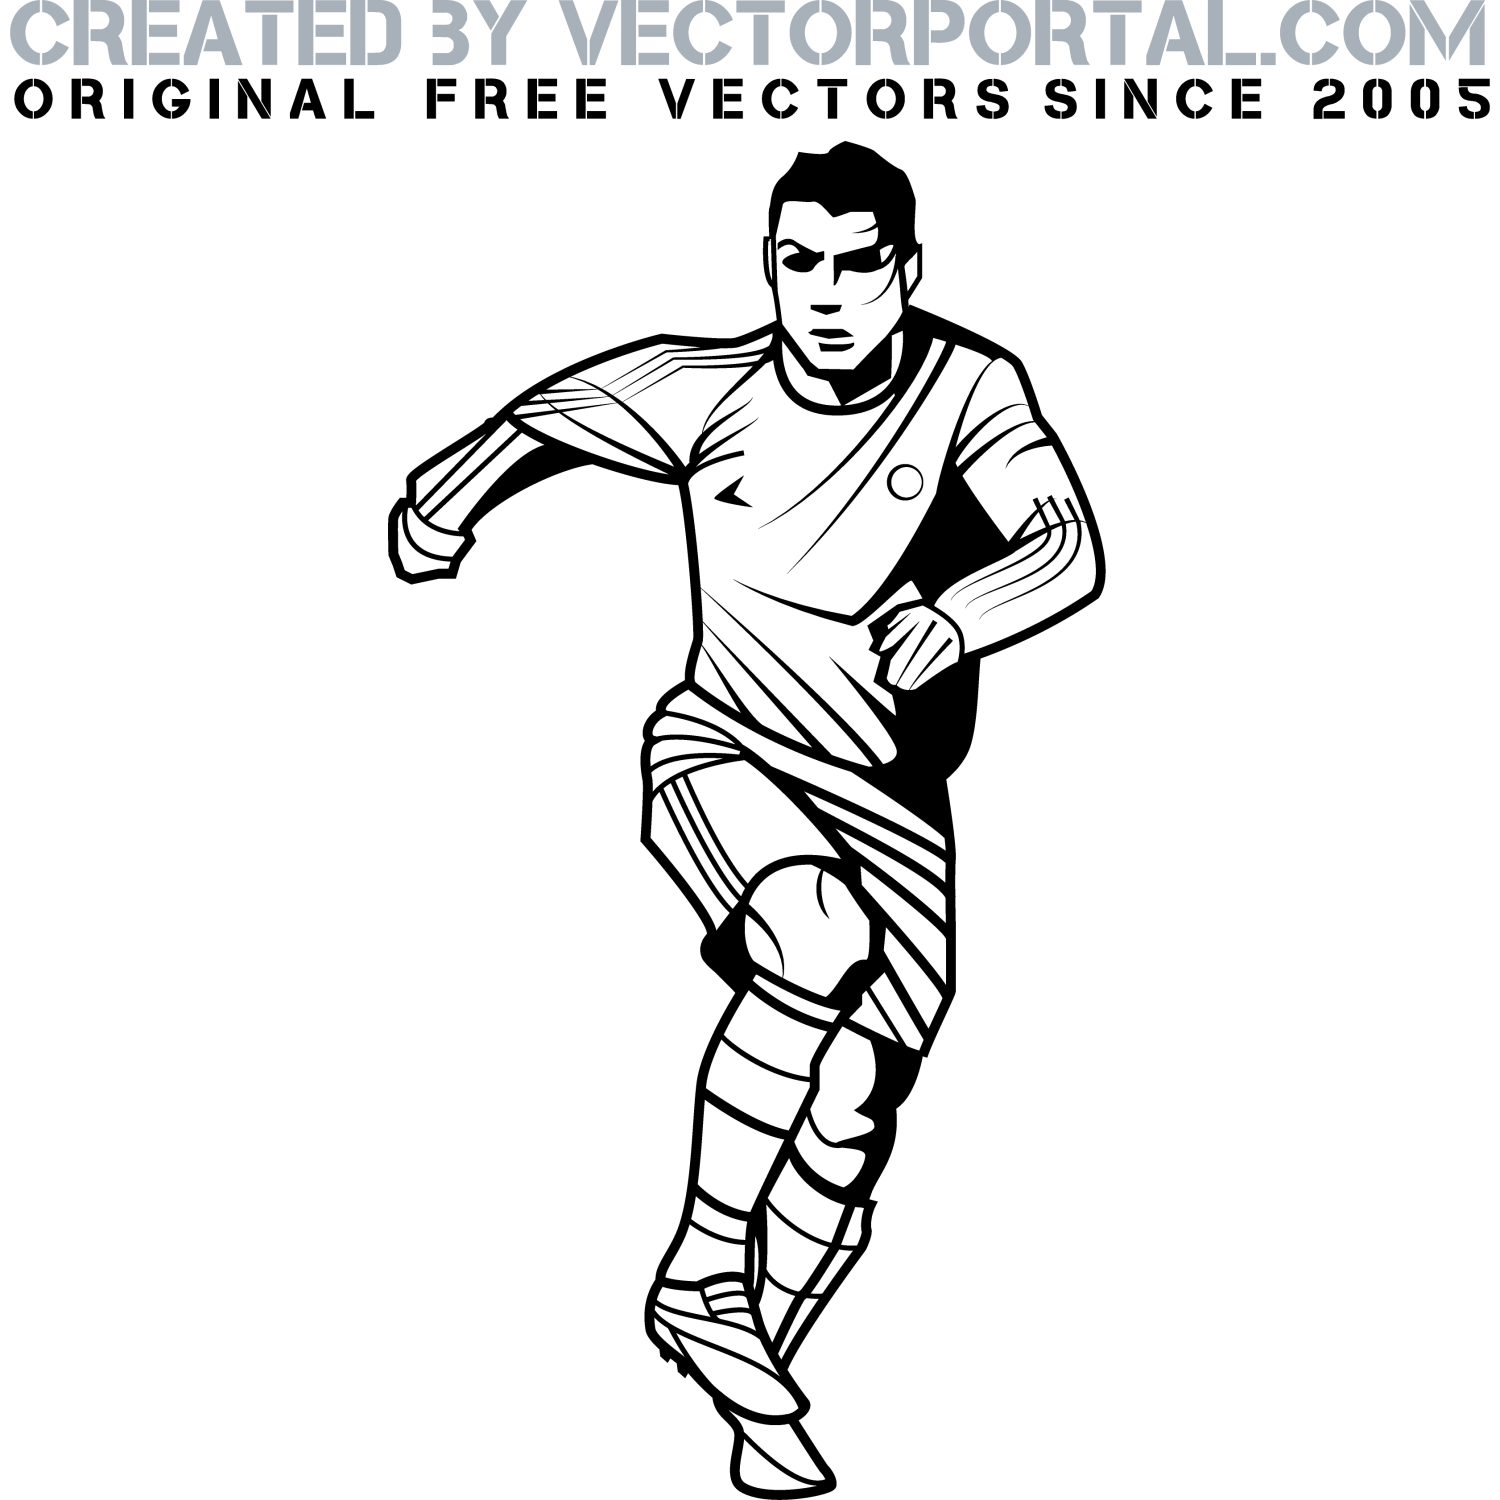 Vector illustration of a football player in action. Image of a footballer playing with ball